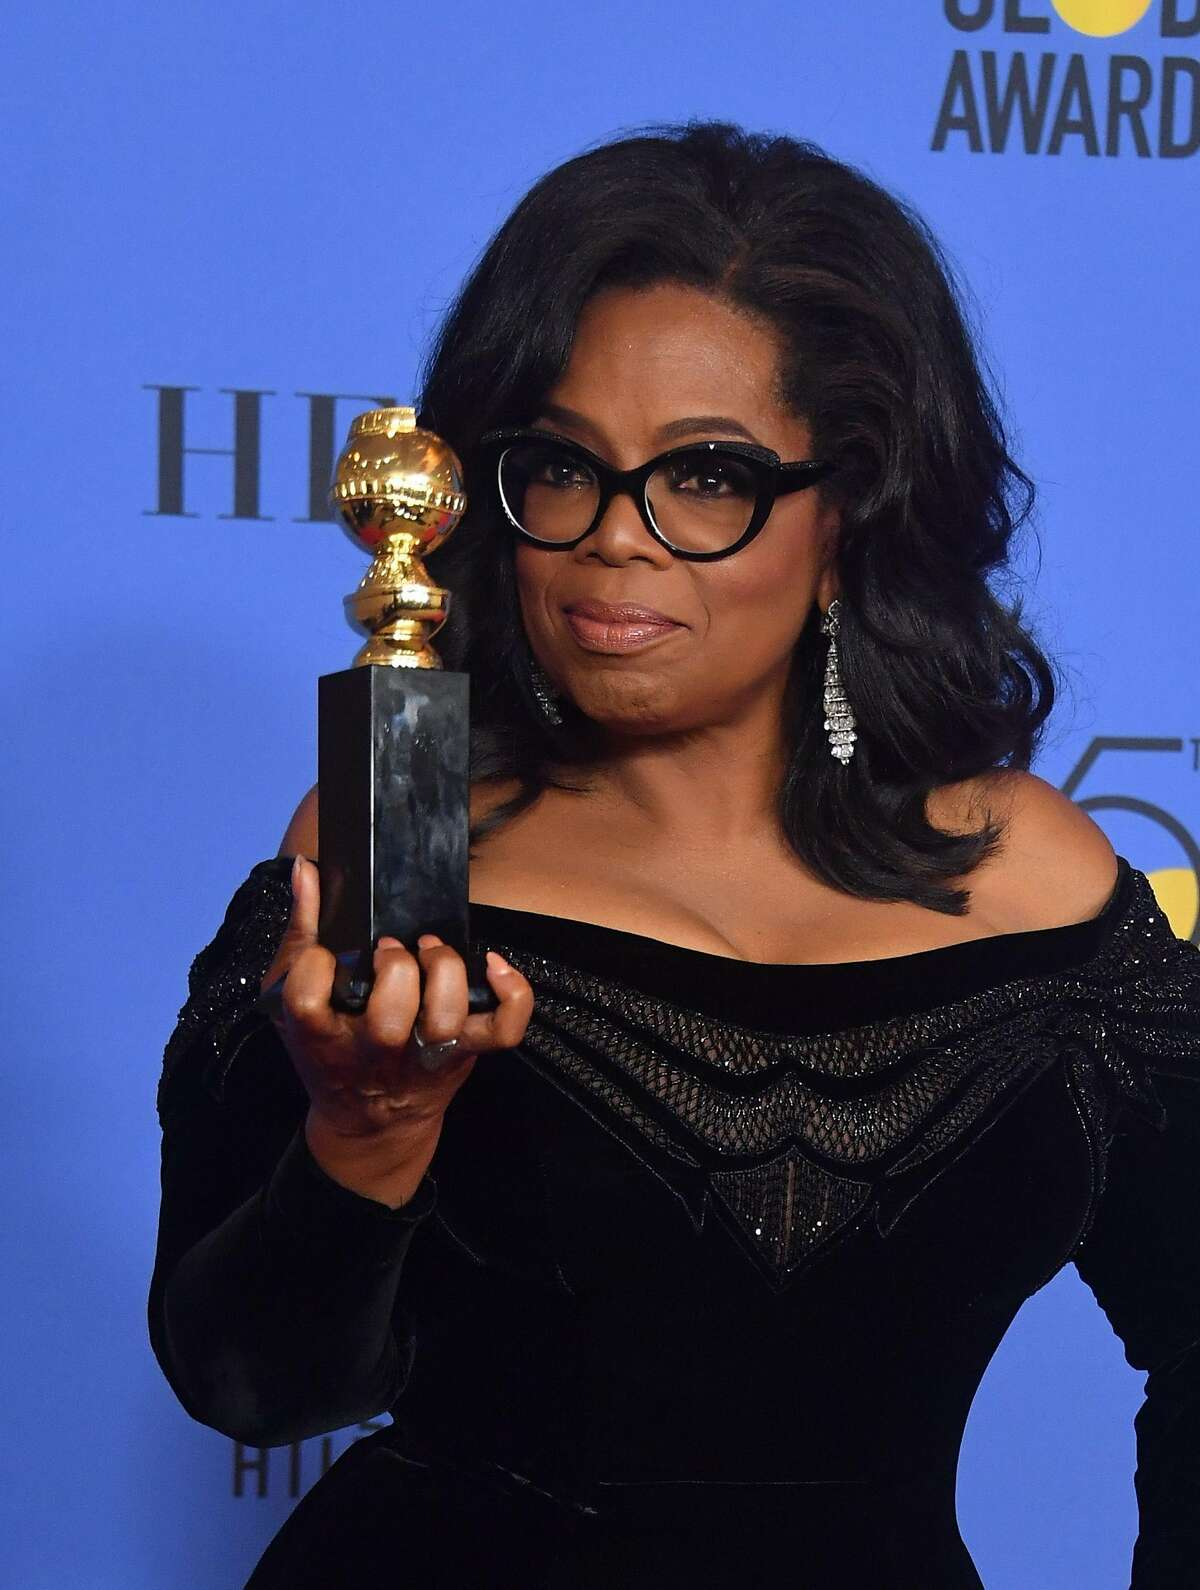 TOPSHOT - Actress and TV talk show host Oprah Winfrey poses with the Cecil B. DeMille Award during the 75th Golden Globe Awards on January 7, 2018, in Beverly Hills, California. / AFP PHOTO / Frederic J. BROWNFREDERIC J. BROWN/AFP/Getty Images